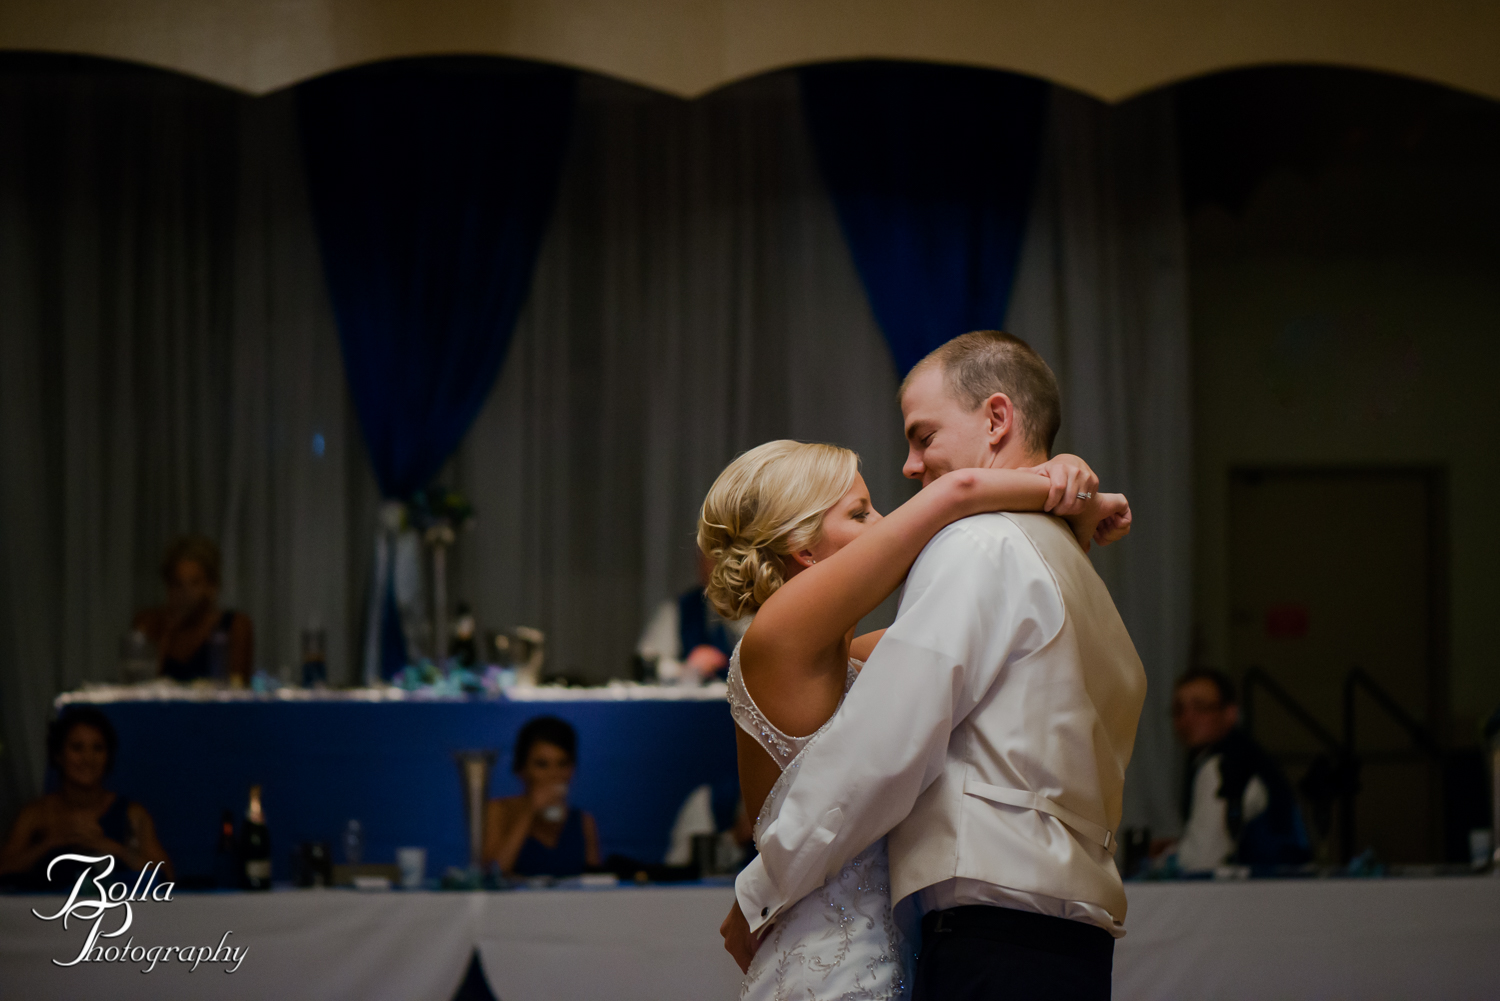 Bolla_Photography_St_Louis_wedding_photographer_Edwardsville_Highland-0425.jpg